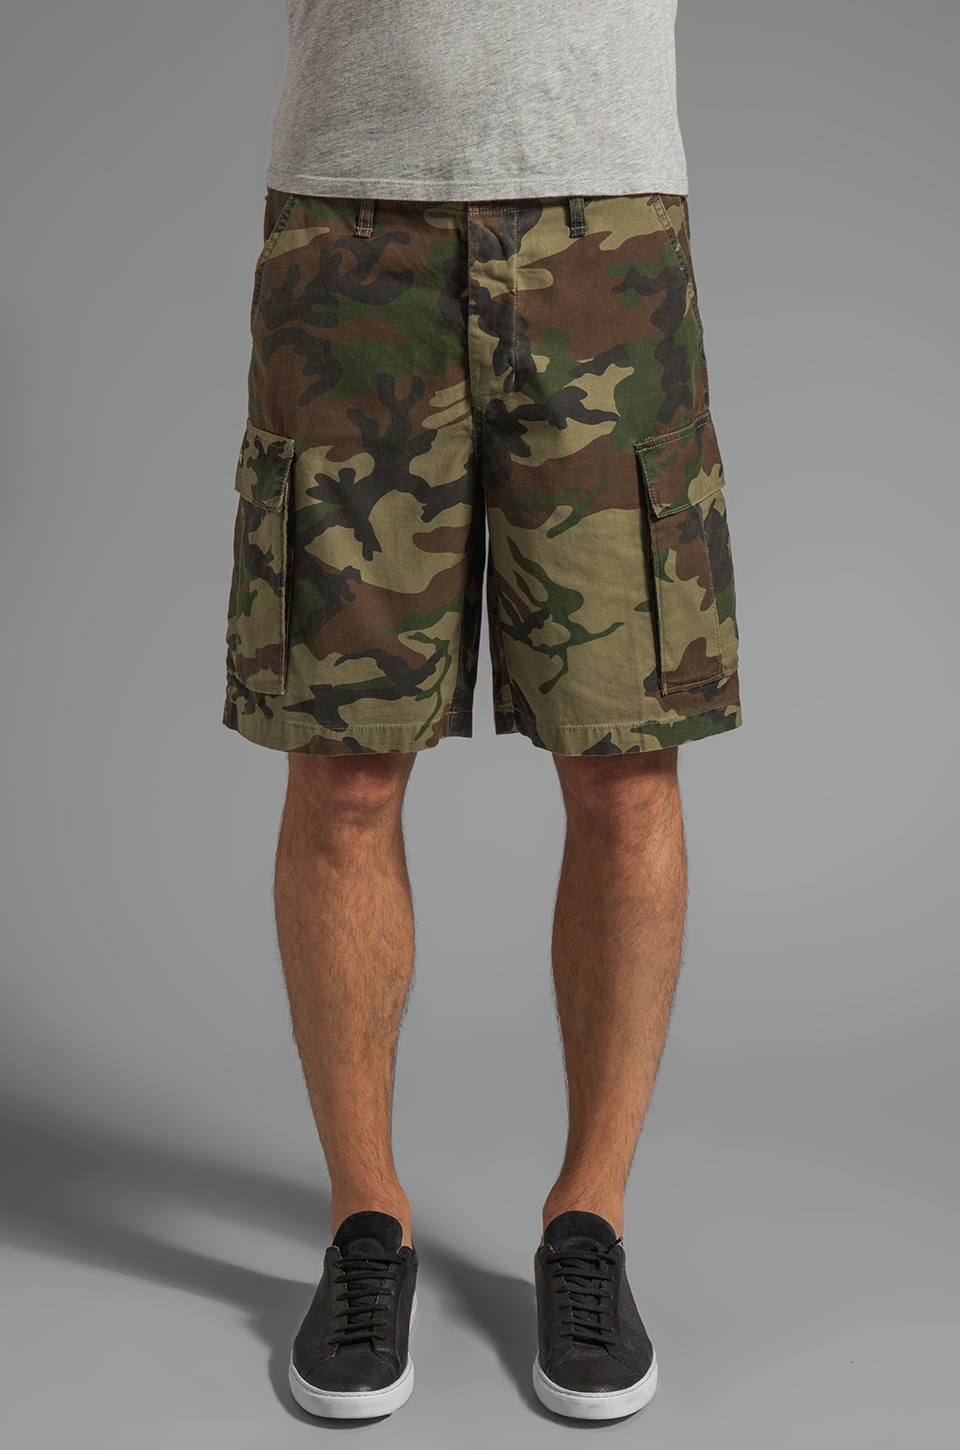 Obey Recon Cargo Short in Field Camo